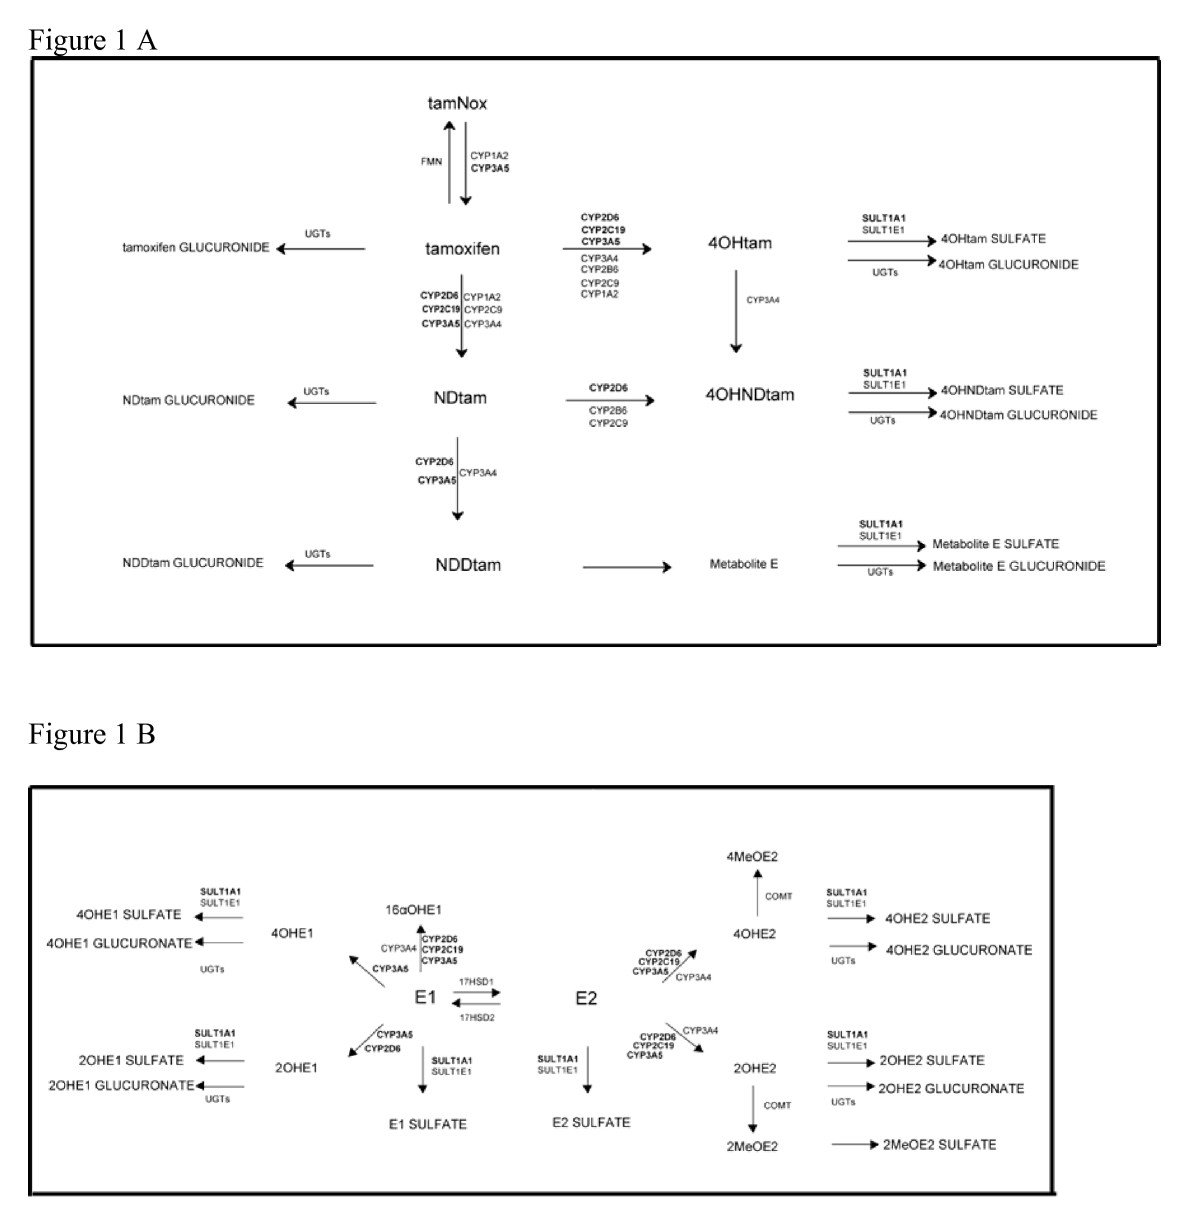 http://static-content.springer.com/image/art%3A10.1186%2F1471-2407-10-313/MediaObjects/12885_2010_Article_2112_Fig1_HTML.jpg